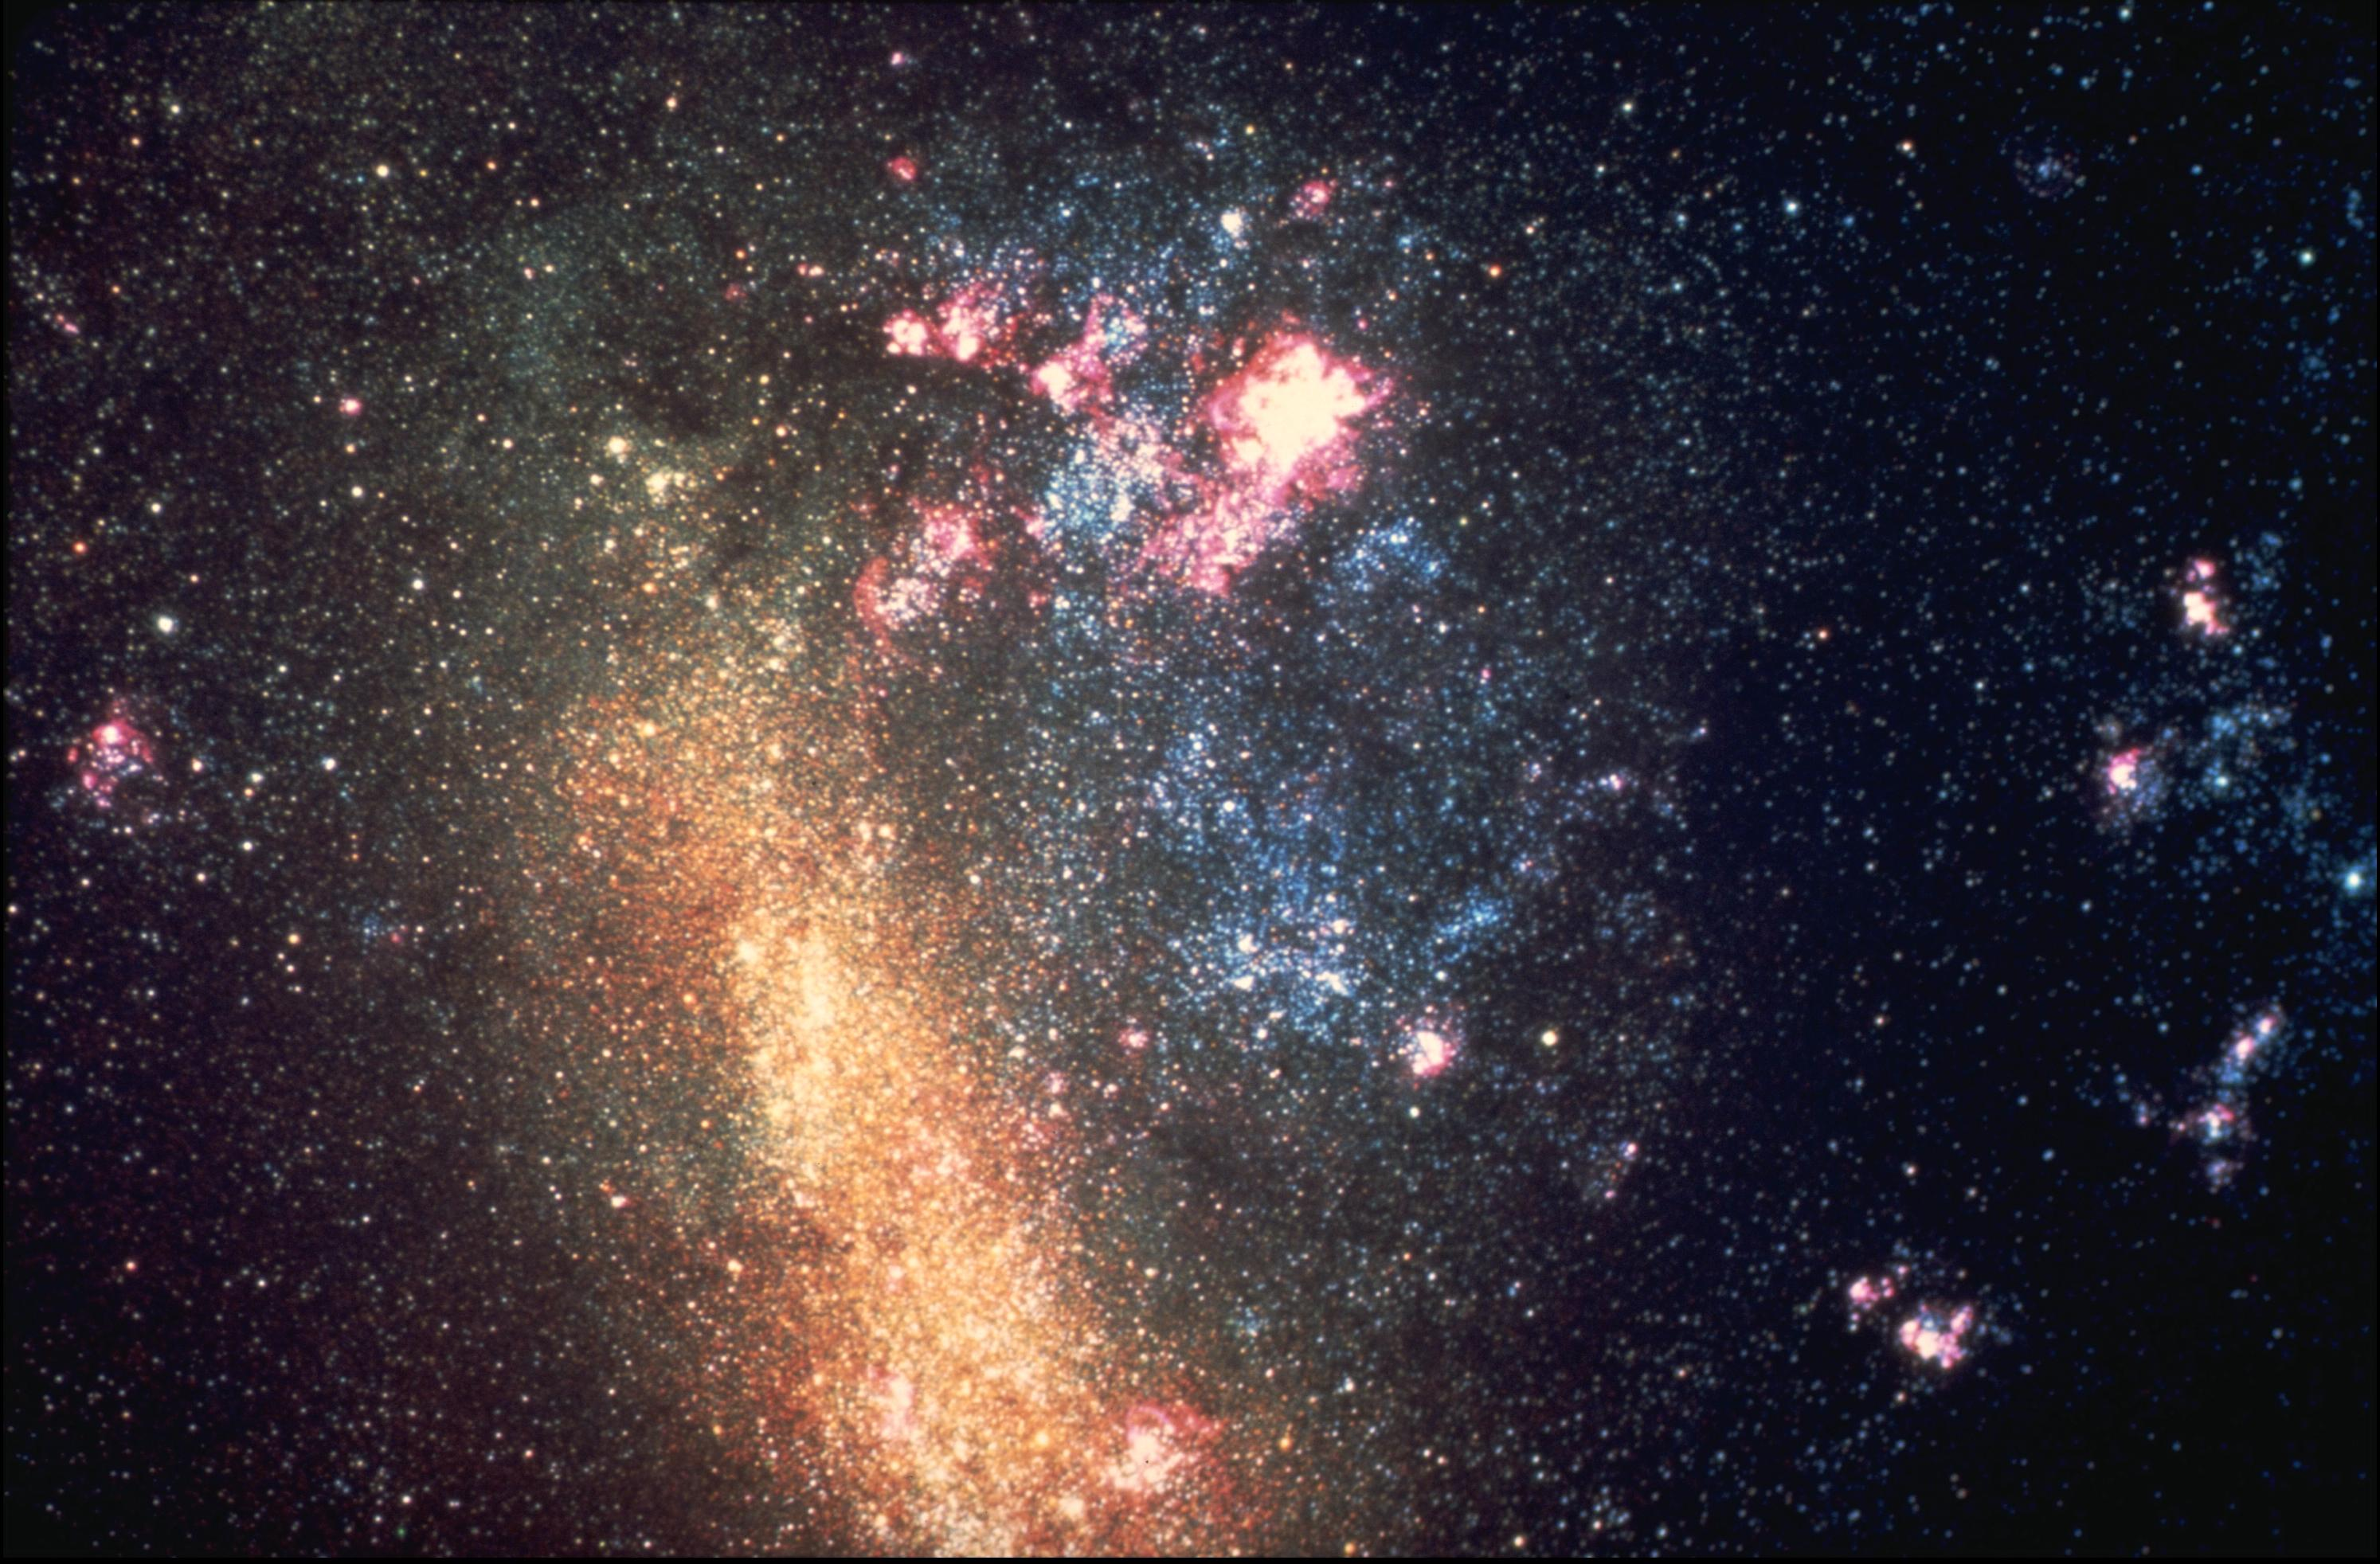 Large Picture of Galaxies - Pics about space